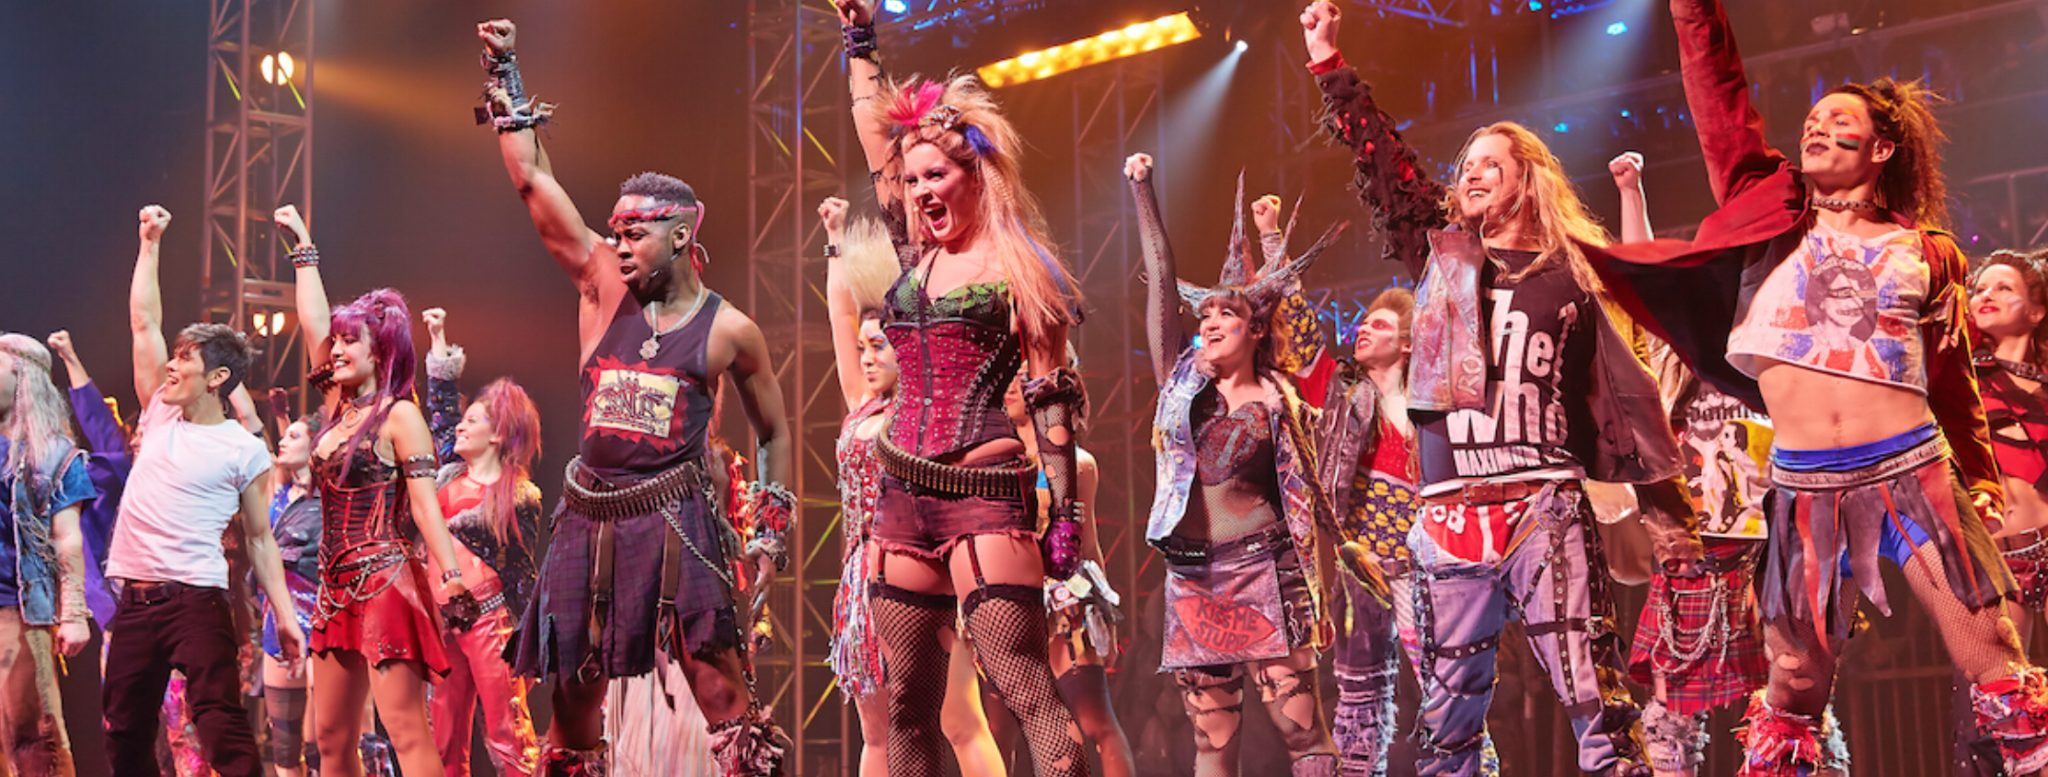 We Will Rock You, the Queen Inspired Rock Musical visits Abbotsford in 2020